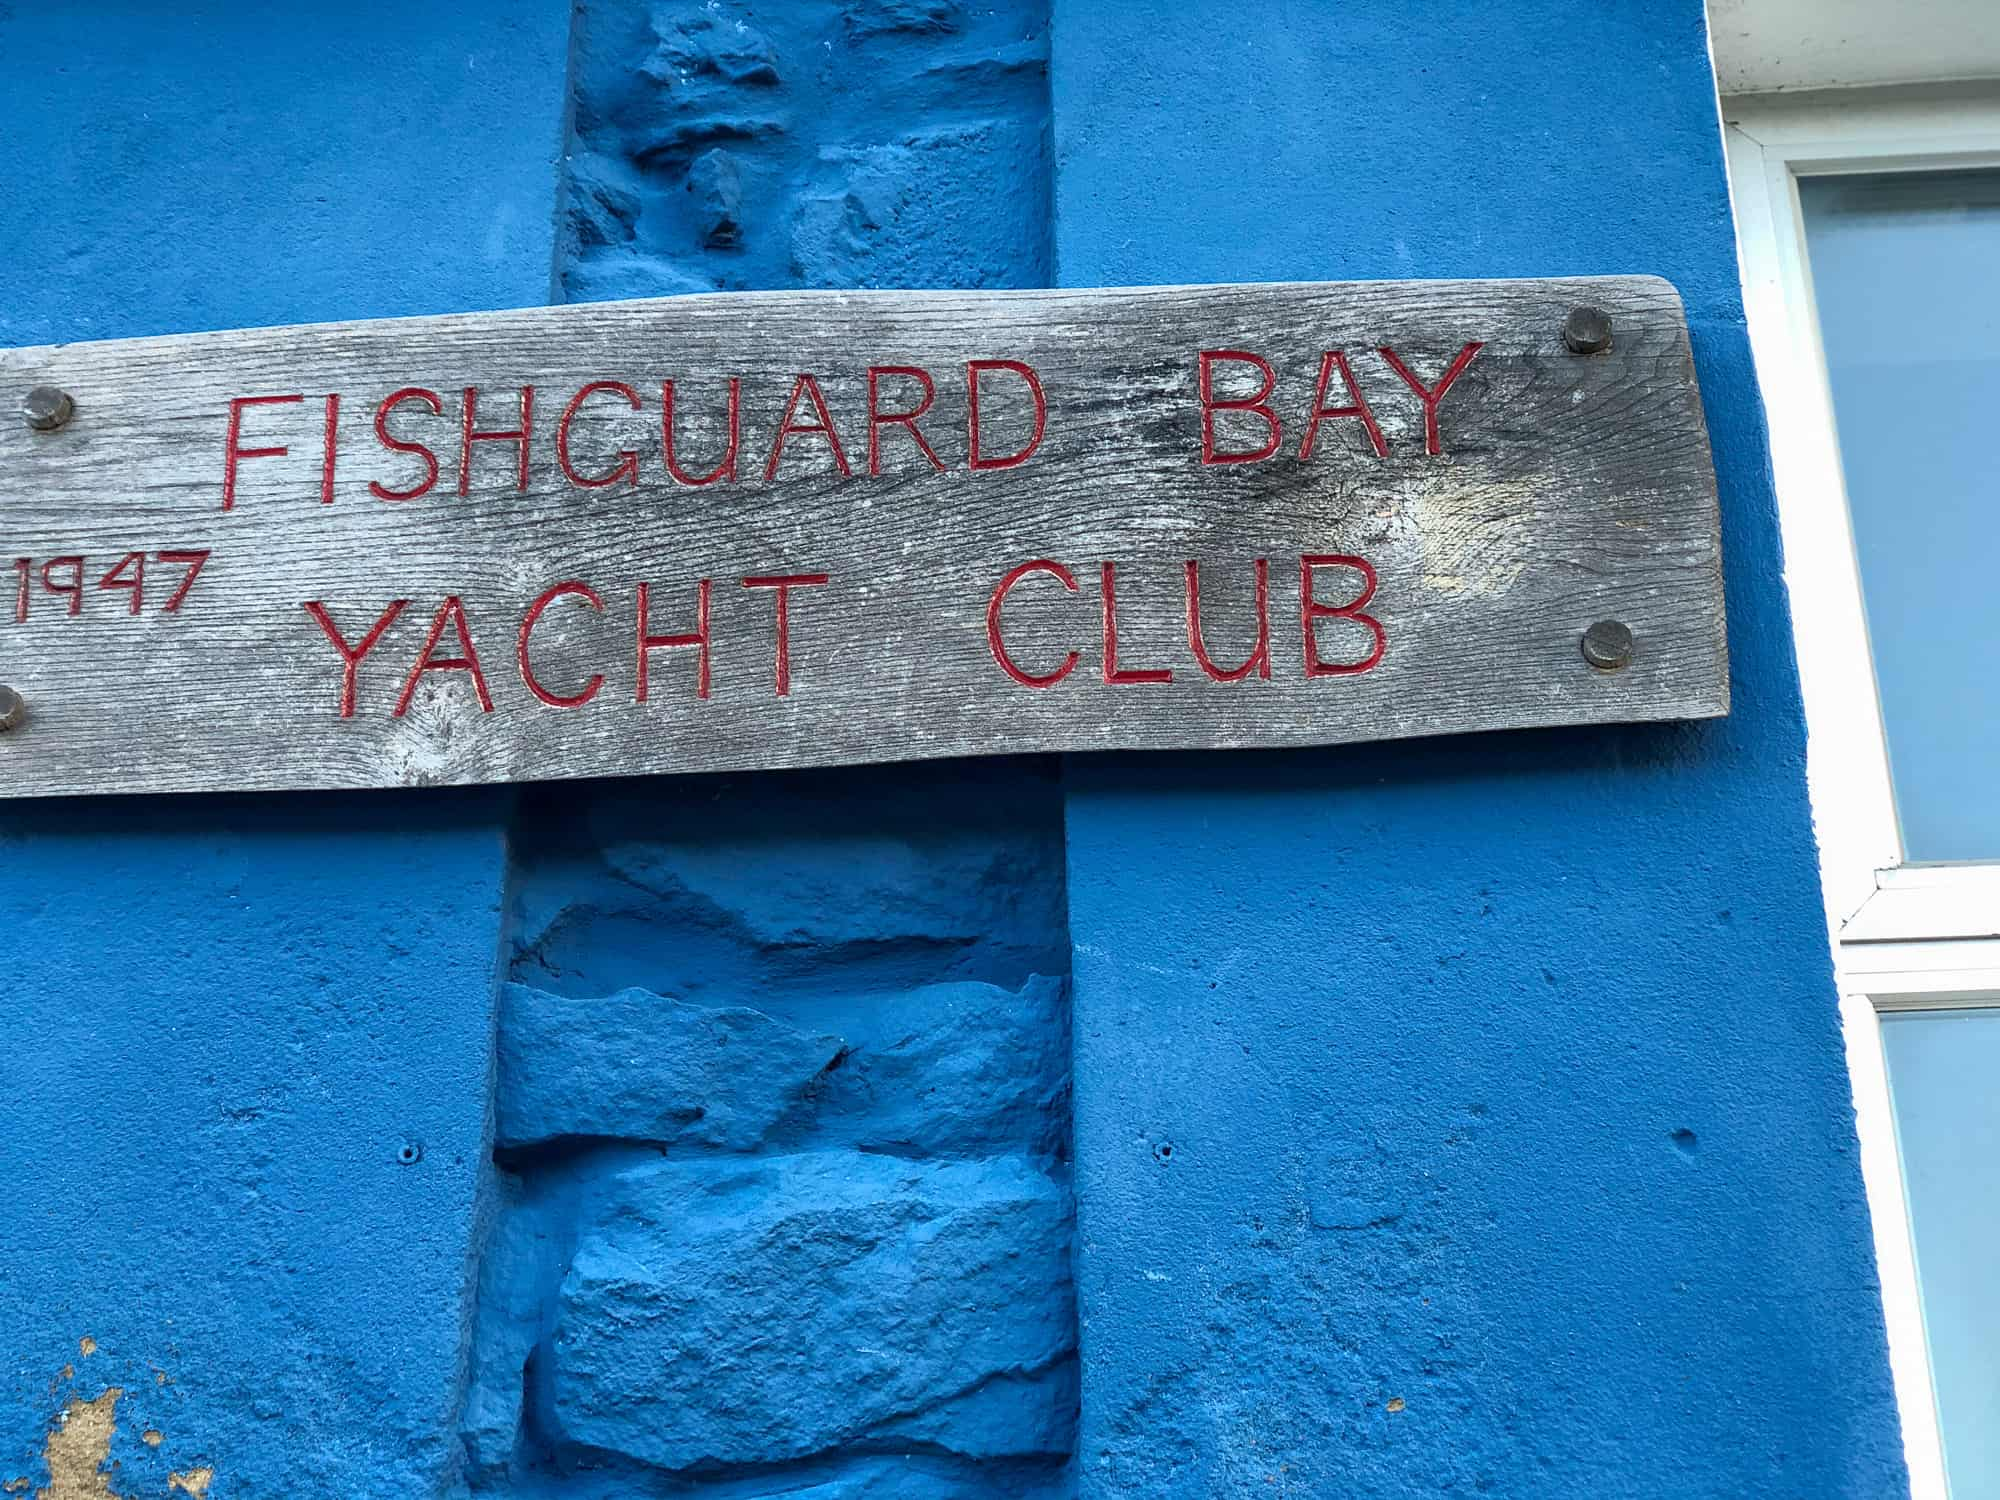 Wales - Pembrokeshire - Fishguard Yacht Club Sign